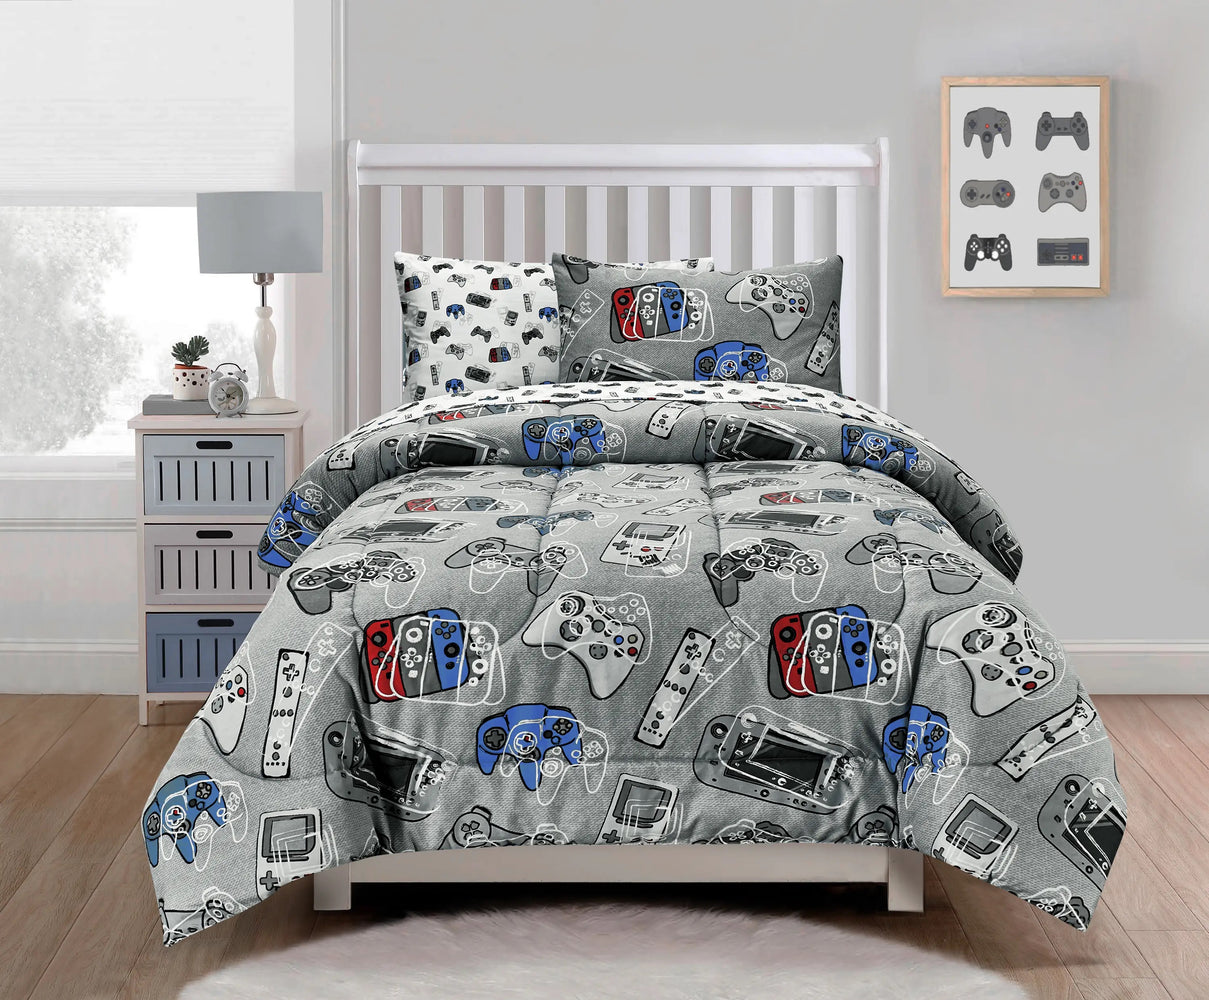 Gamer Glow in the Dark Comforter Set